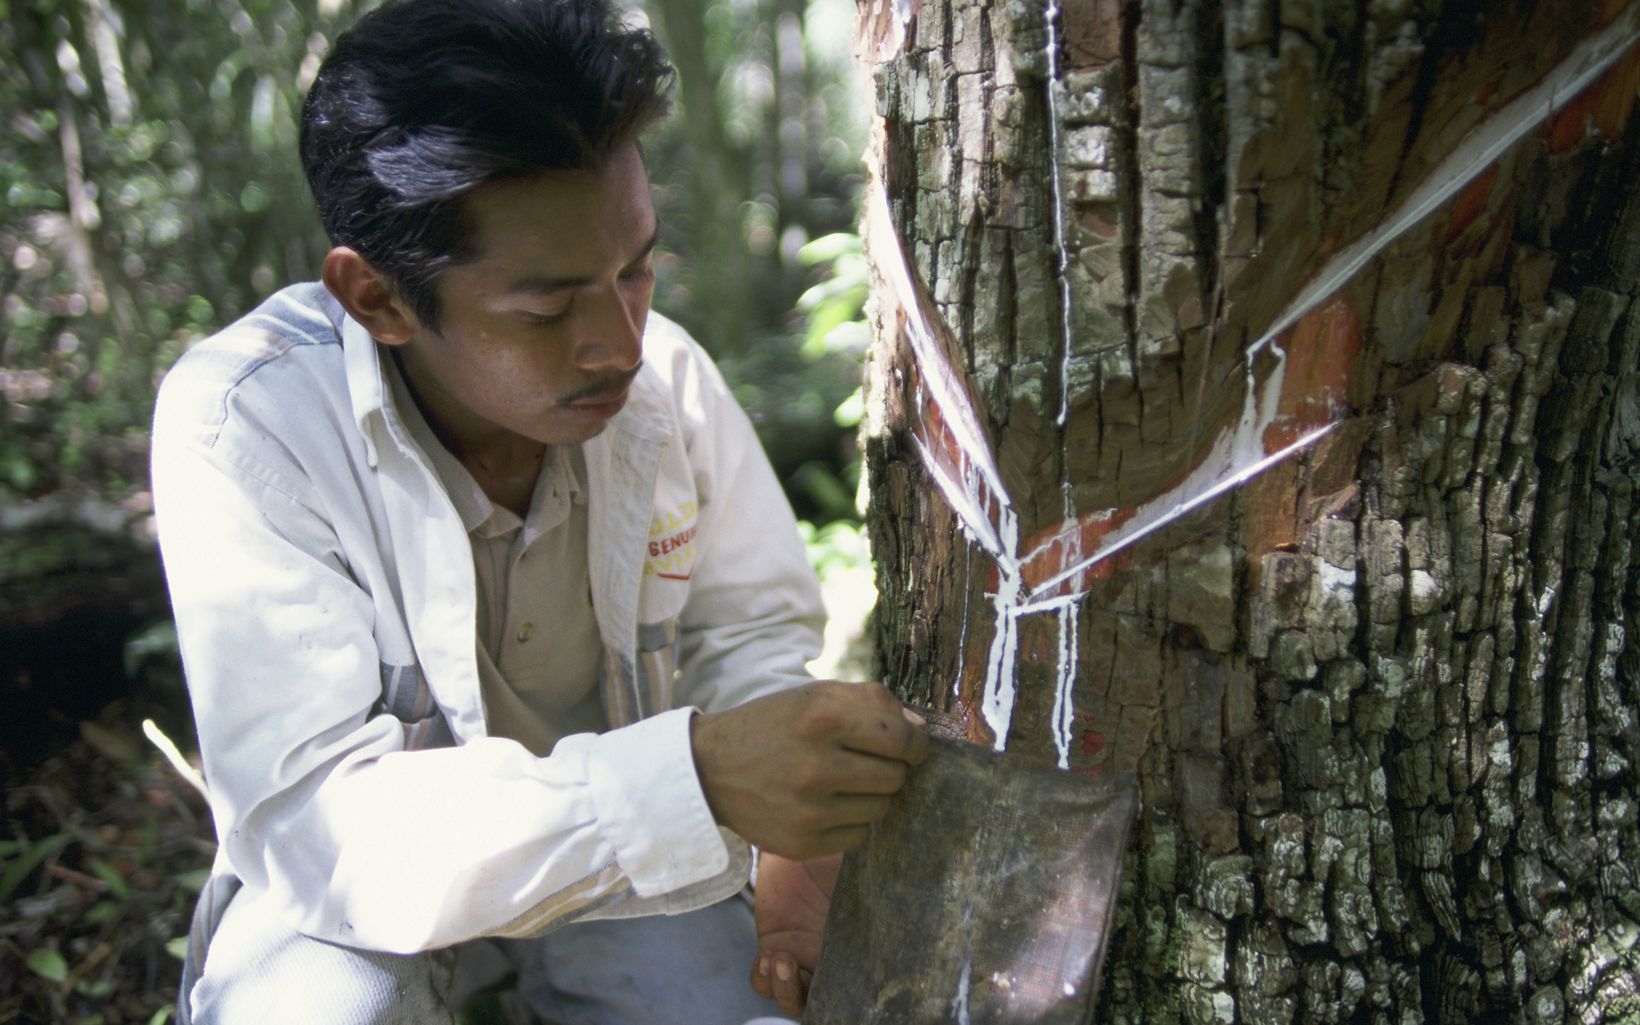 taps sap from a gum tree in the Maya forest along the edge of Mexico's Calakmul Biosphere Reserve.